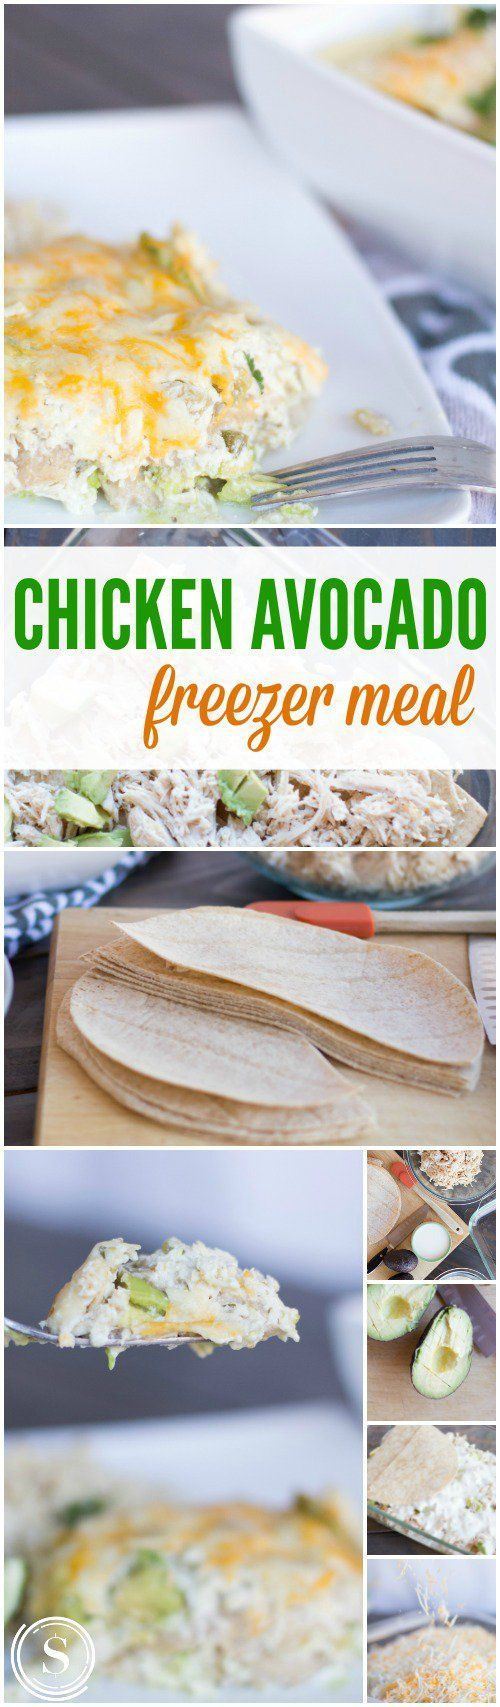 Chicken Avocado Freezer Meal! Homemade Dinner Idea for Busy Families! Find More Freezer Meals Here --> http://www.passionforsavings.com/freezer-meals/